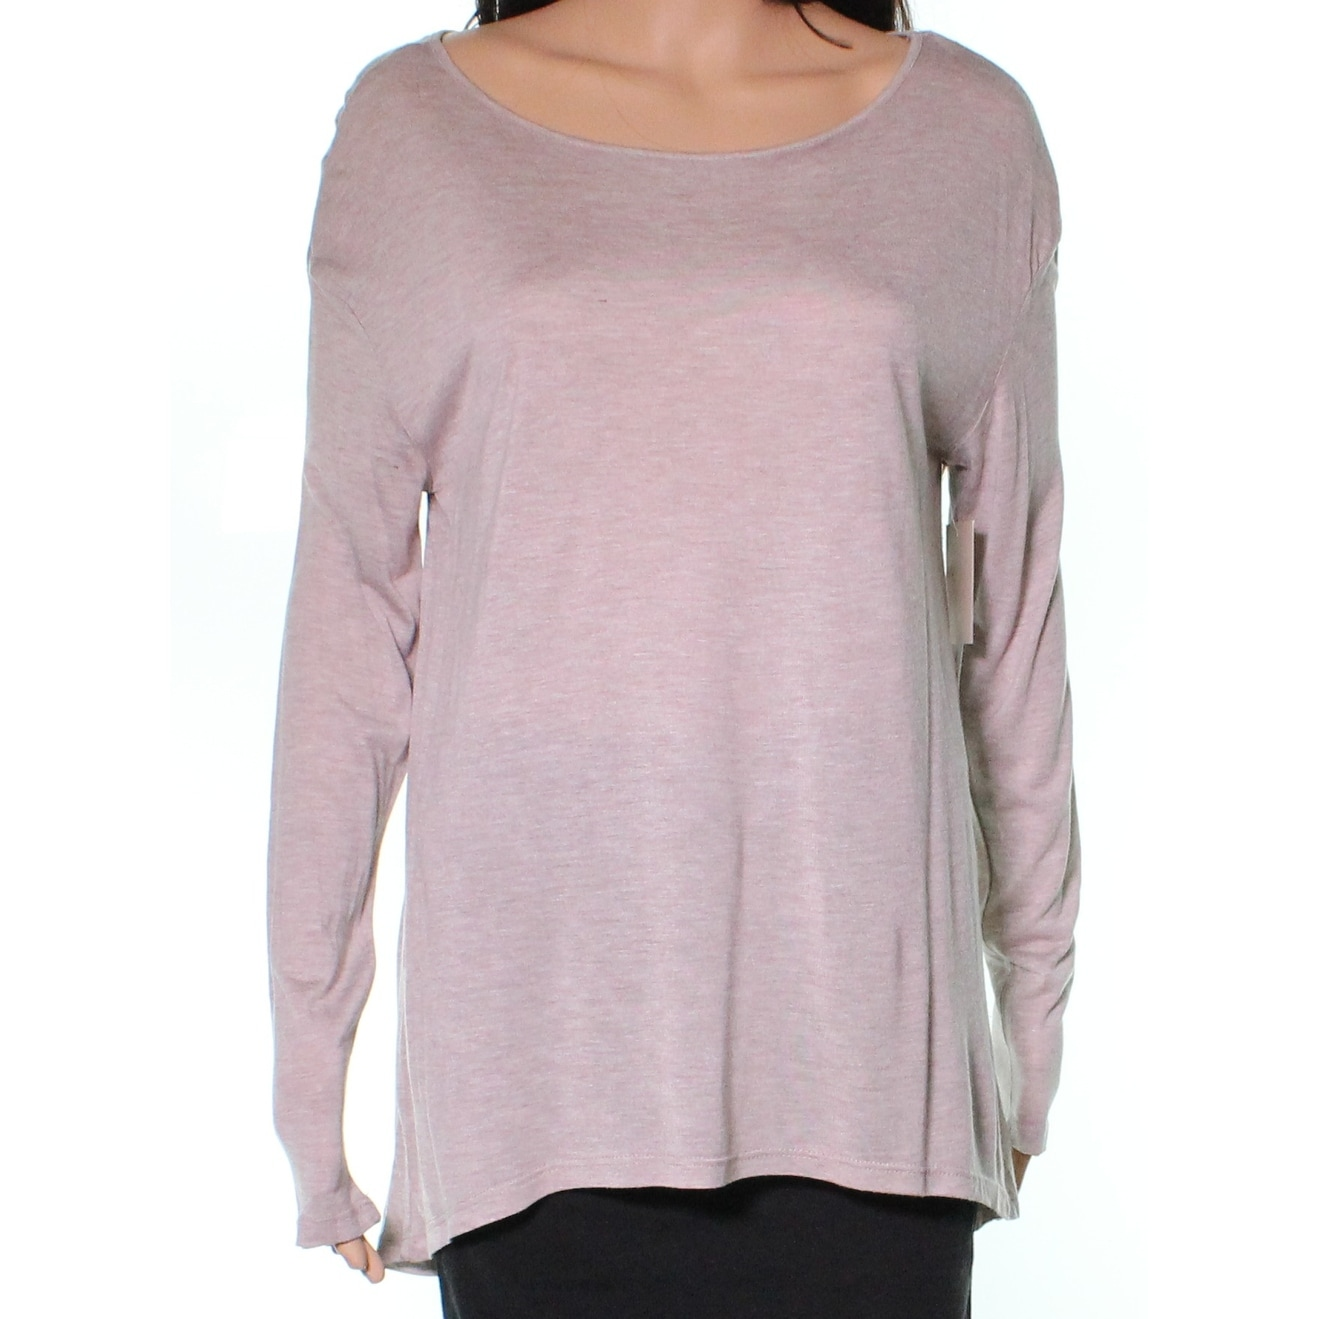 7030b6b5f34f 14th & Union Tops   Find Great Women's Clothing Deals Shopping at Overstock